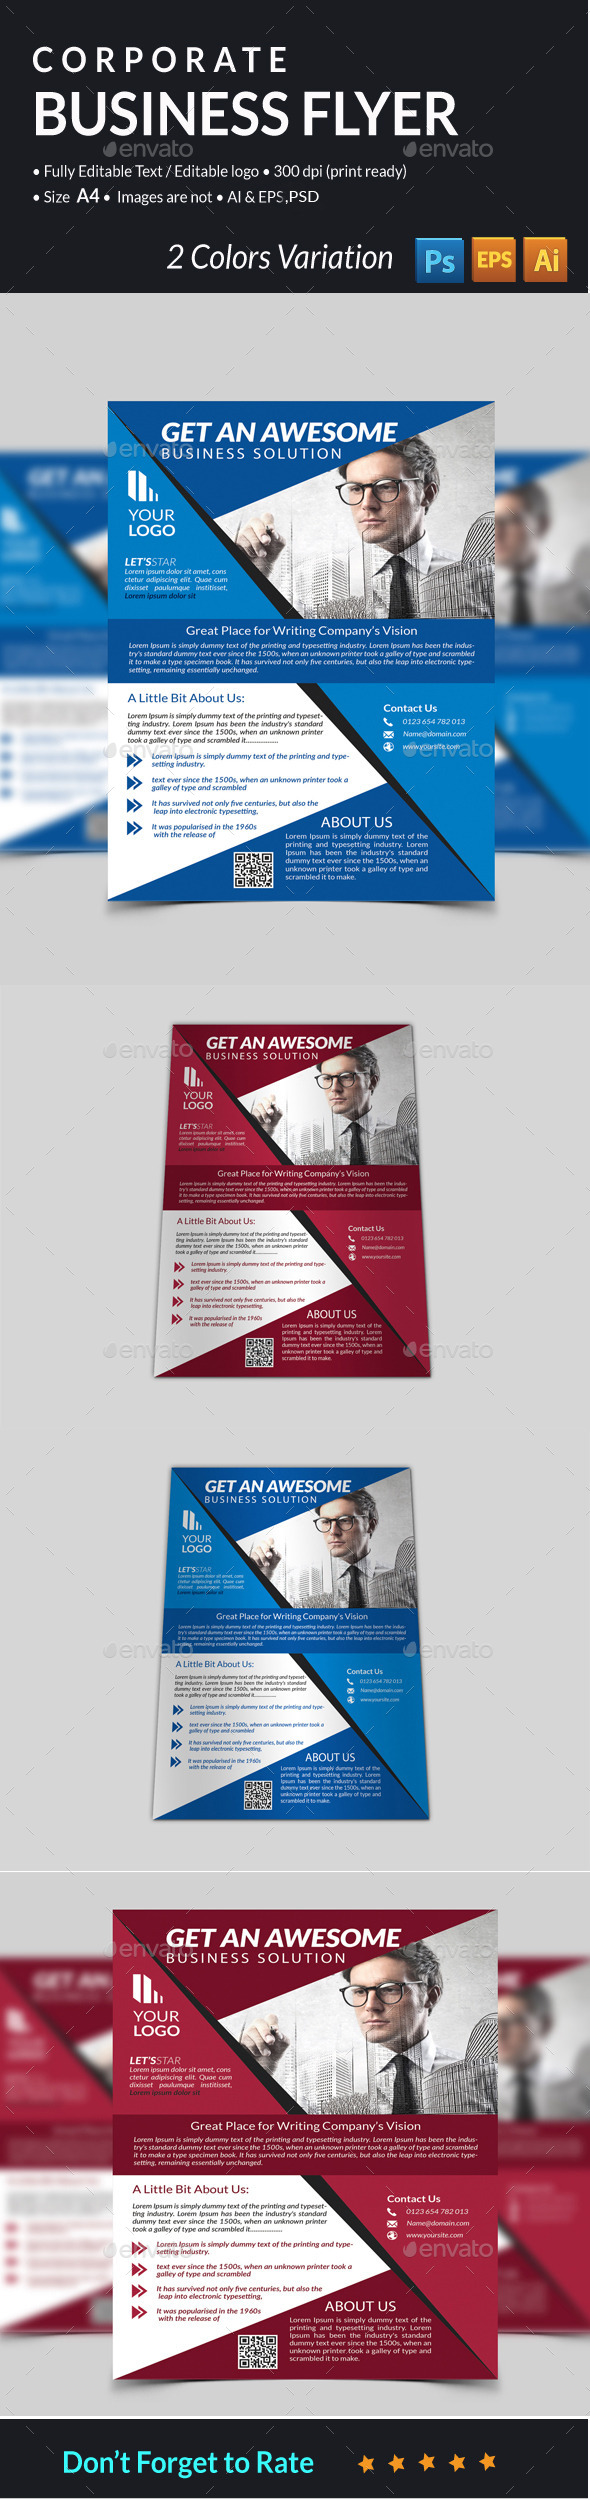 GraphicRiver Corporate Business Flyer 11857317